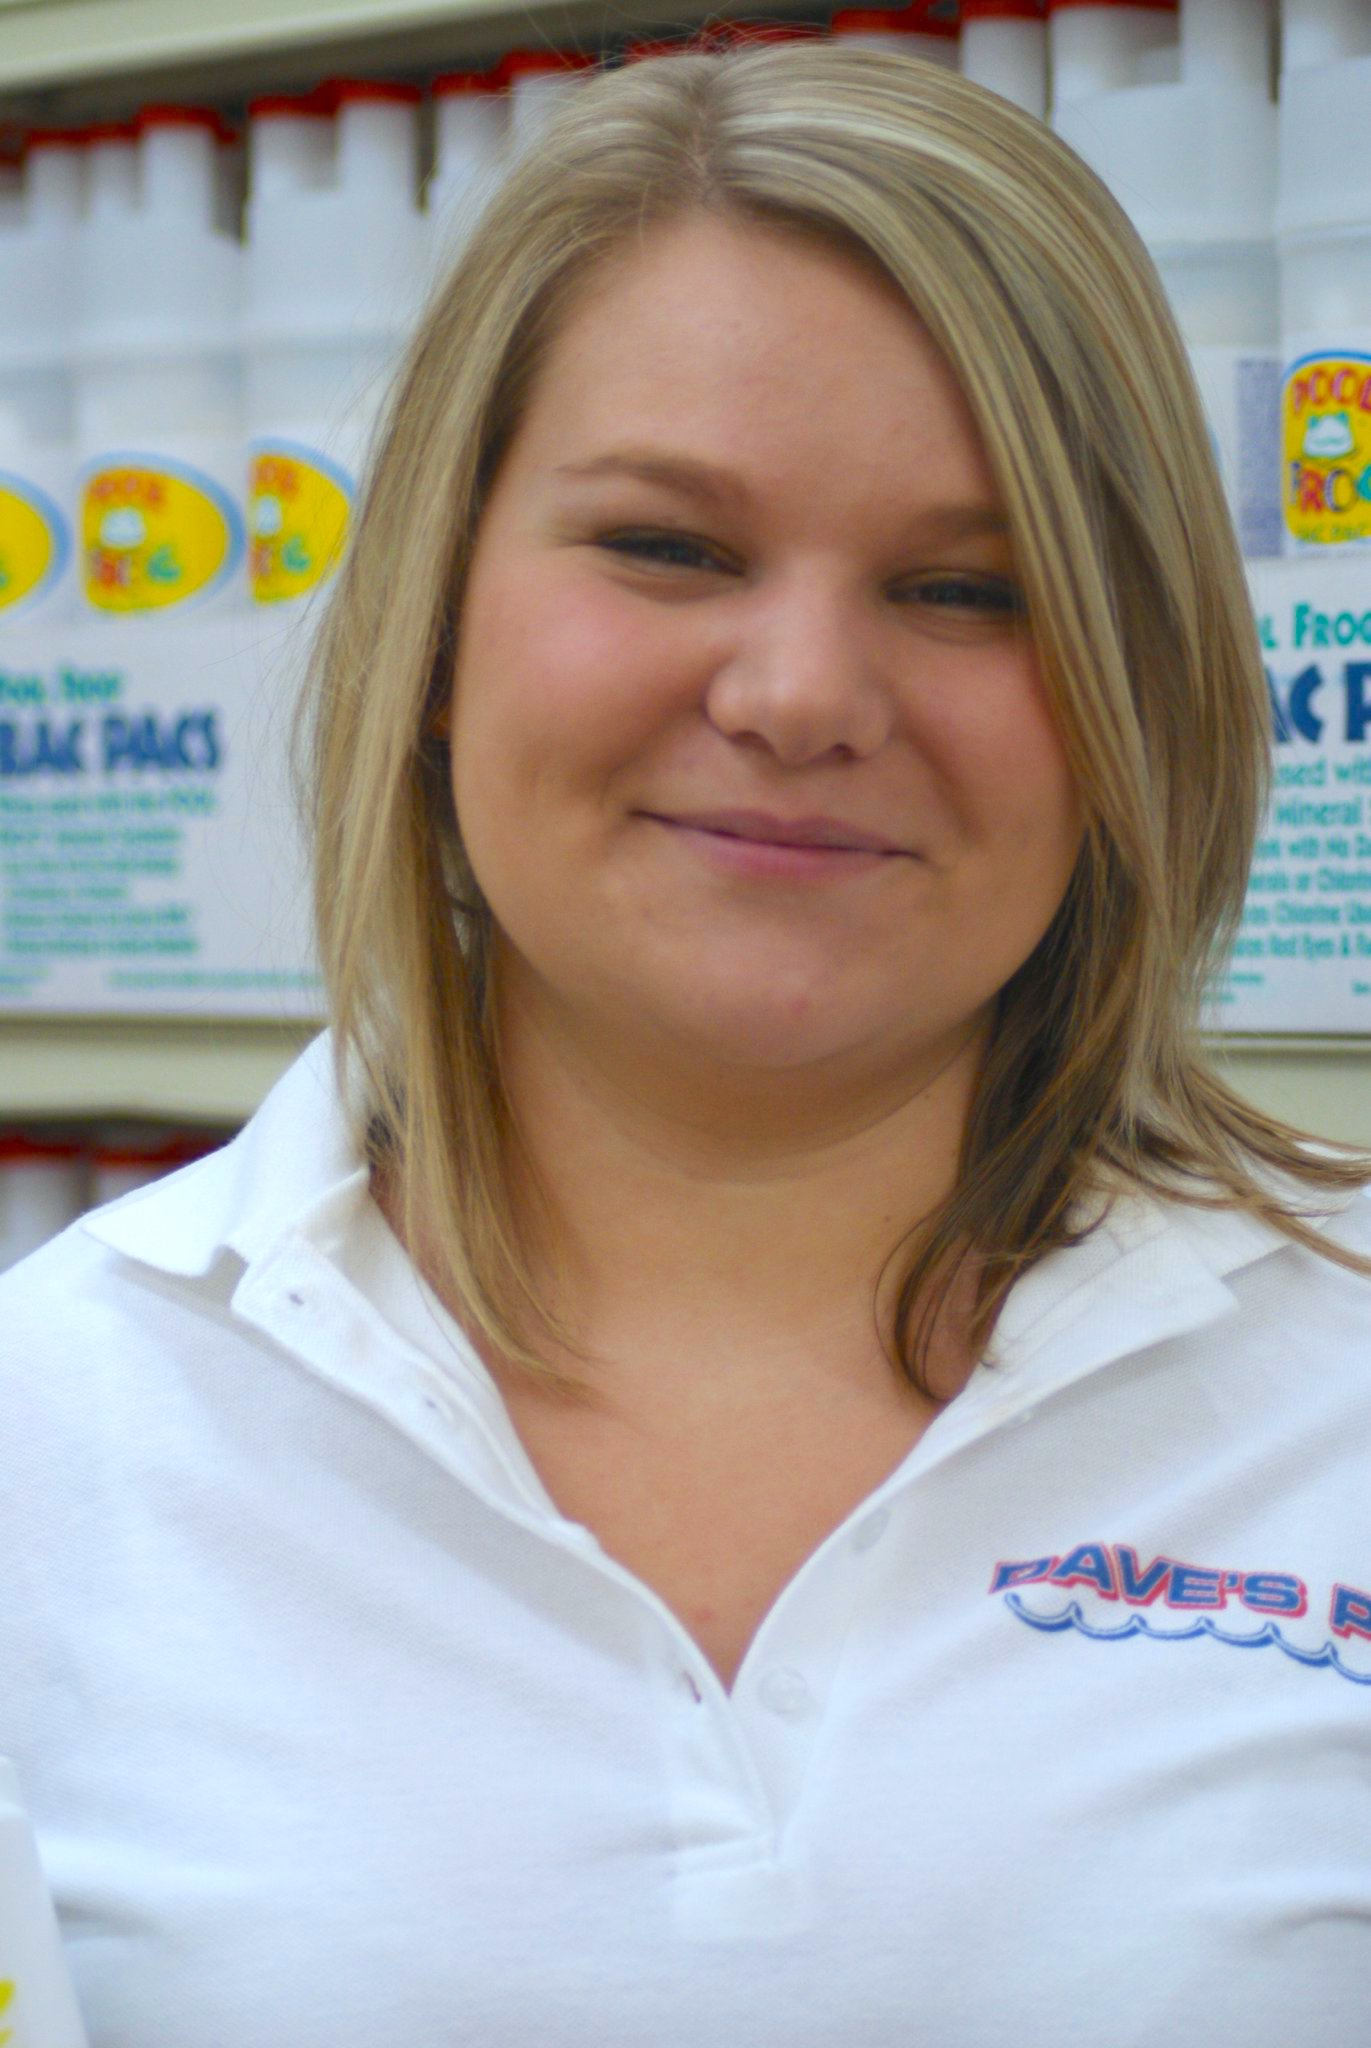 Samantha will greet you in the store!